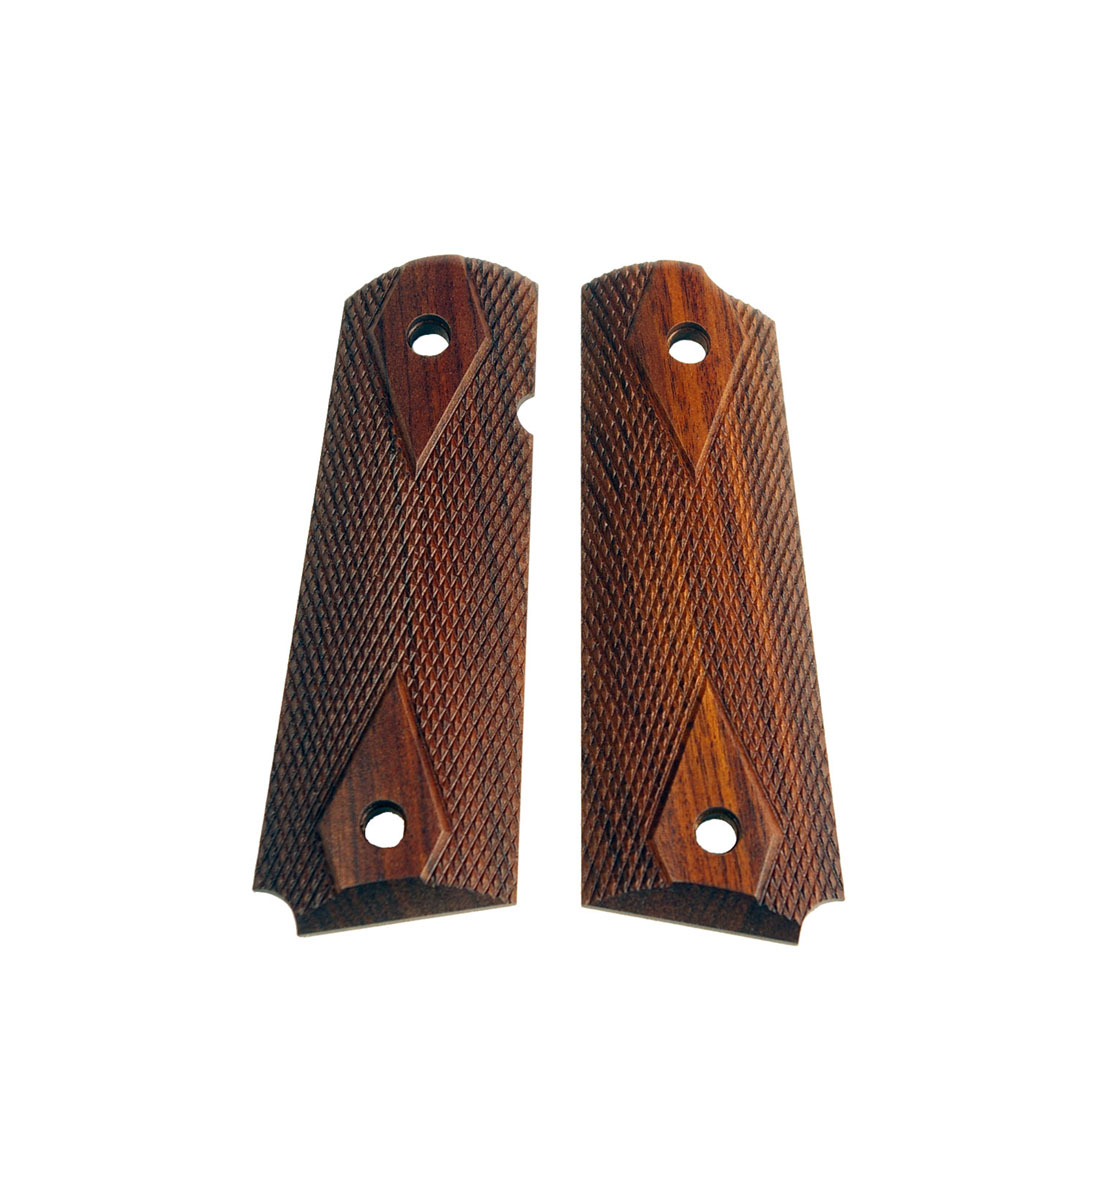 Ahrends Govt 1911 Grips, Double Diamond, Moradillo